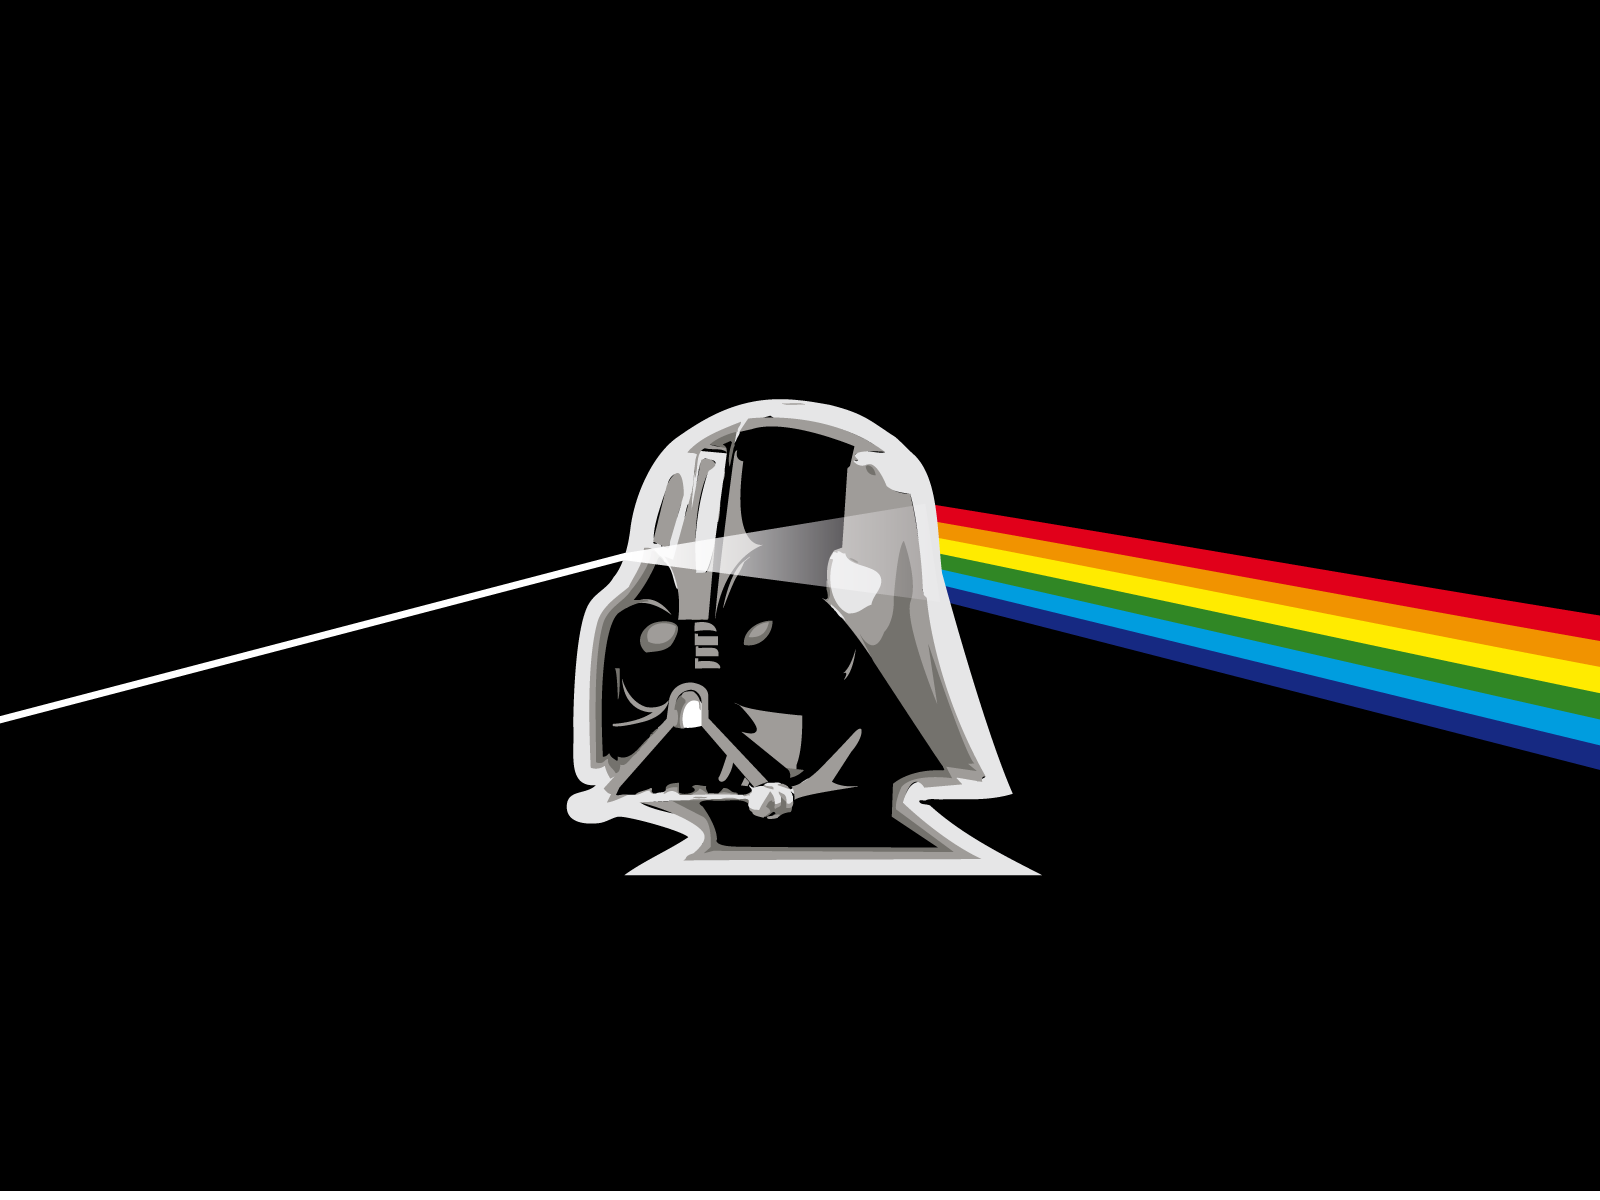 The Dark Side Wallpaper